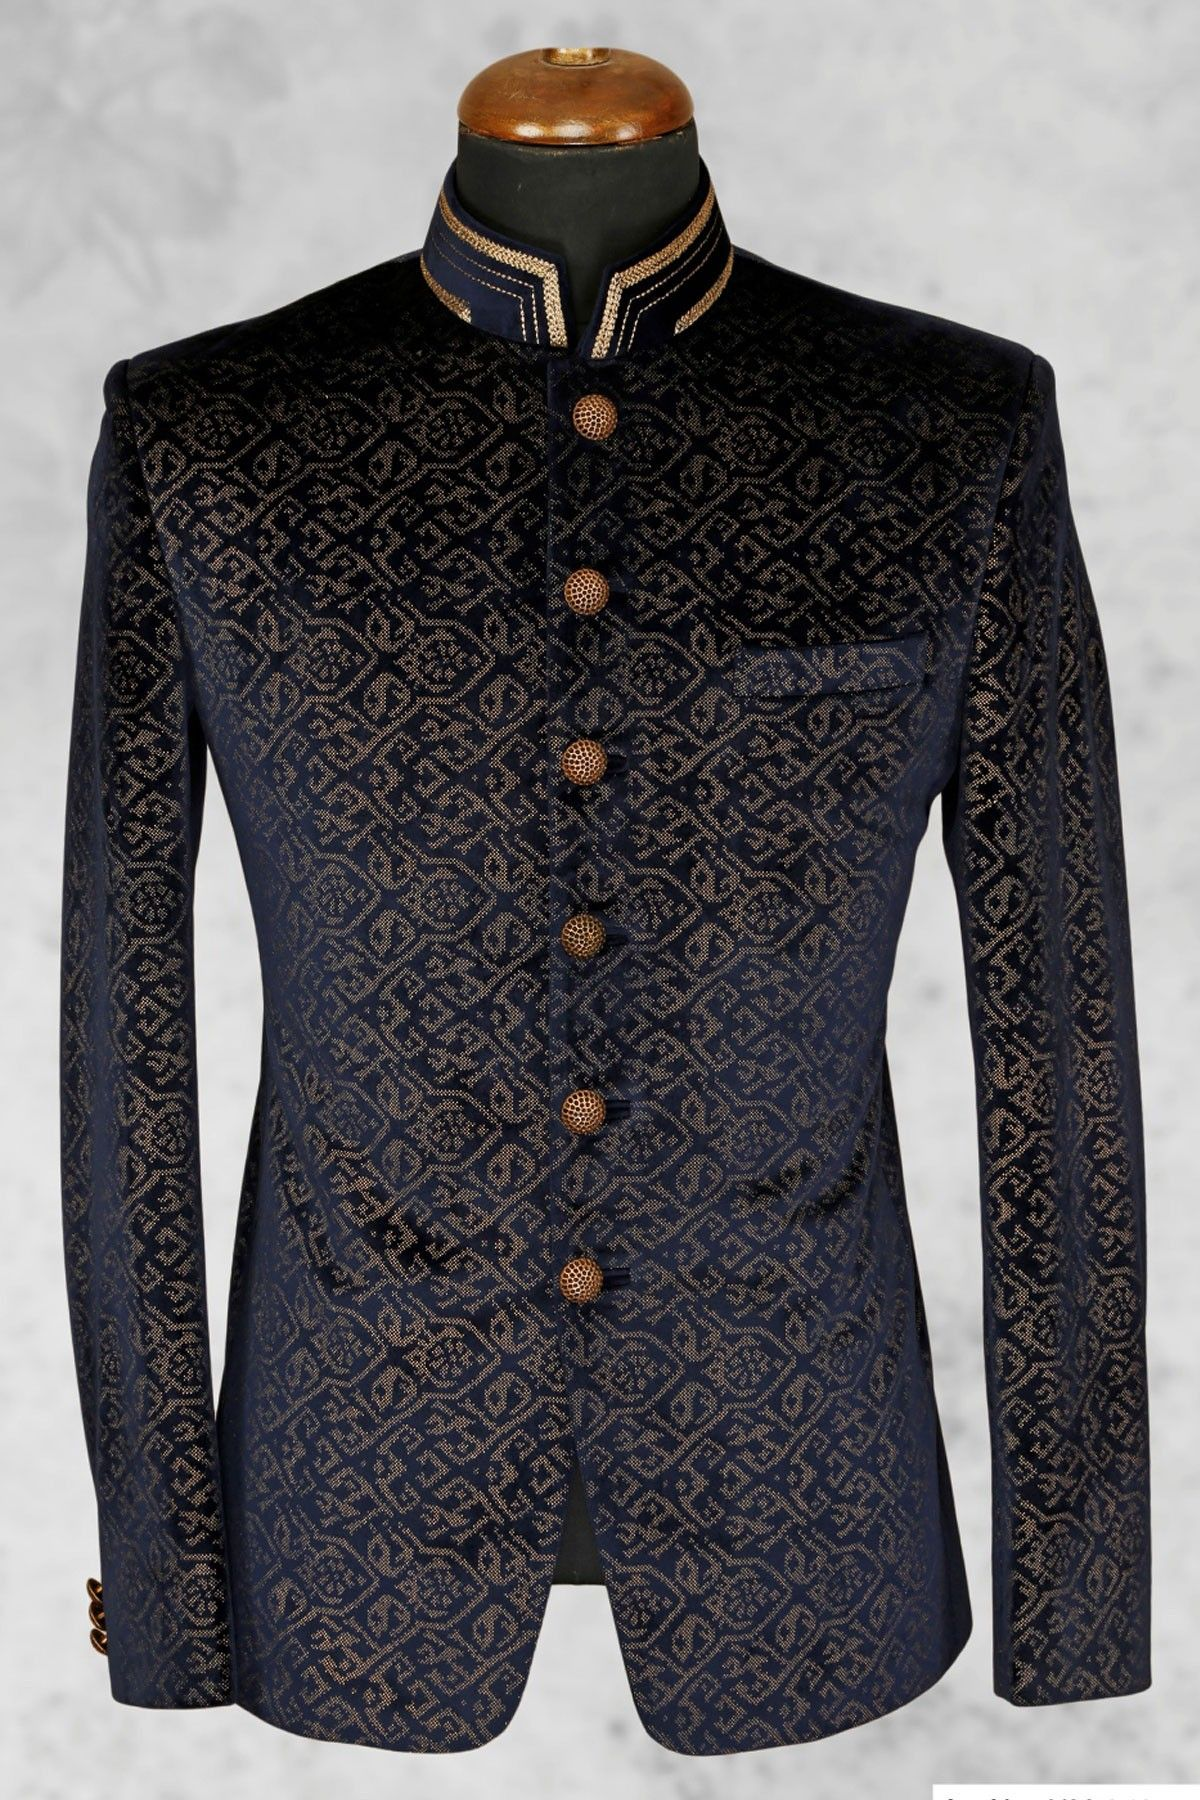 Black presentable velvet suit with bandhgala collarst